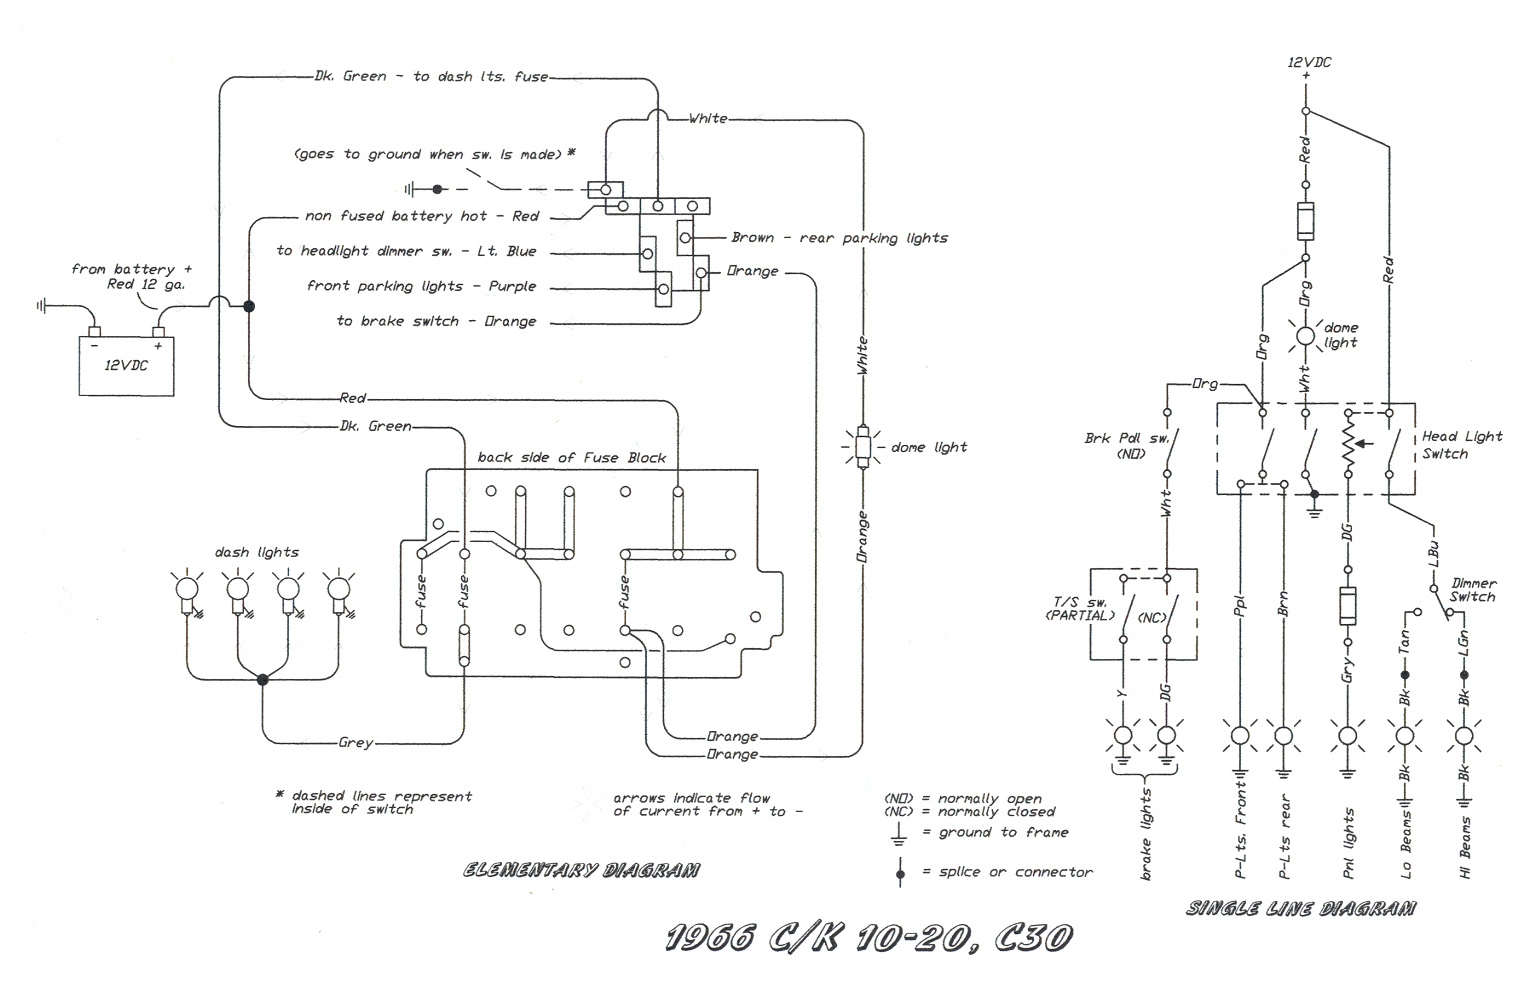 Diagram Besides Peterbilt Headlight Wiring Diagram On 94 Chevy S10 on 1994 s10 speedometer, 1994 s10 ss, chevy s10 2.2l engine diagram, 1994 s10 starter, 1994 s10 fuel pump, 1994 s10 engine, 1994 s10 thermostat, 1994 s10 parts diagram, 1994 s10 headlight, 1994 s10 exhaust system, 1994 s10 clutch, 1994 s10 fuse box diagram, 1994 s10 interior, 1994 s10 sensor diagram, 1994 s10 frame, 1994 s10 vacuum diagram, 1994 s10 transmission, 1994 s10 oil filter, 1994 s10 wheels, 1994 s10 manual,